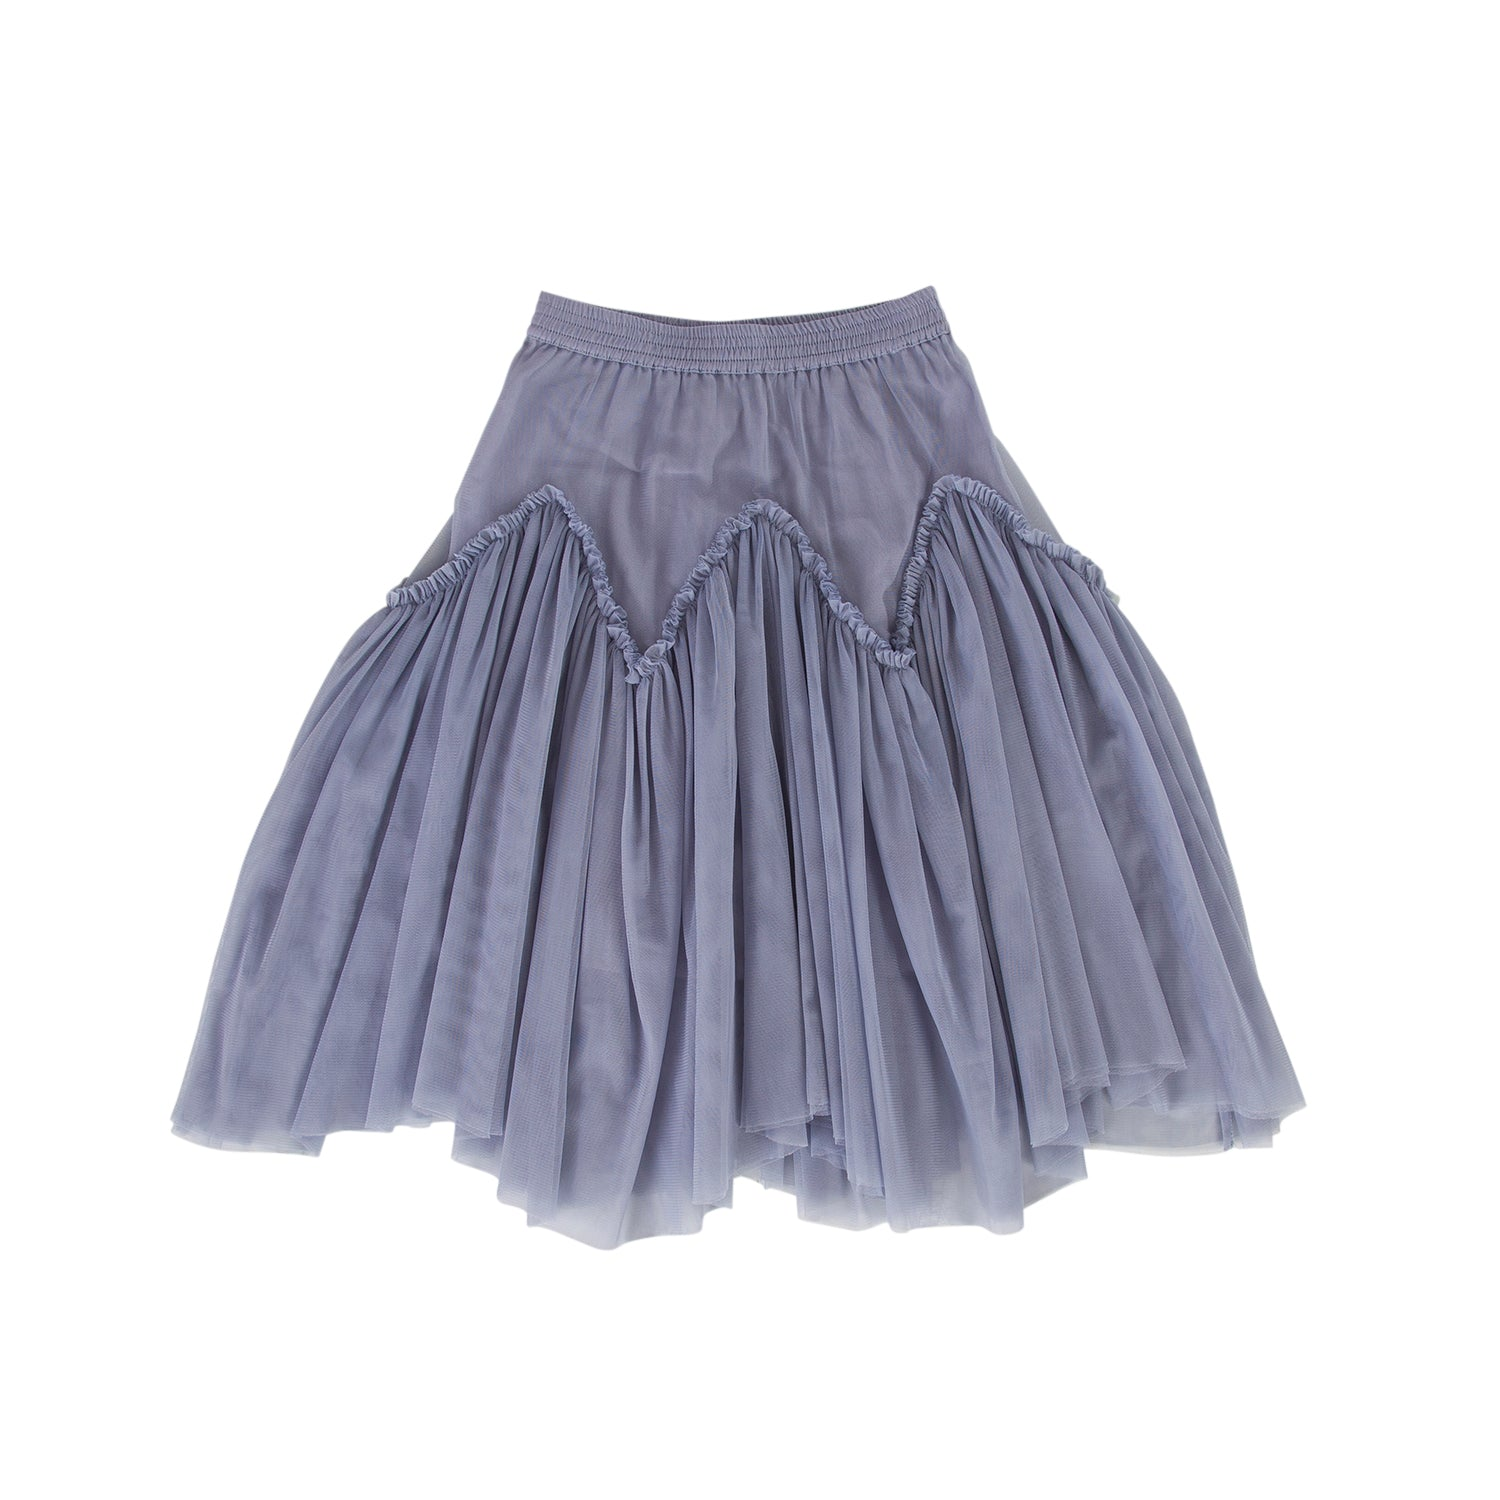 Peggy - Harper Skirt Serenity Blue